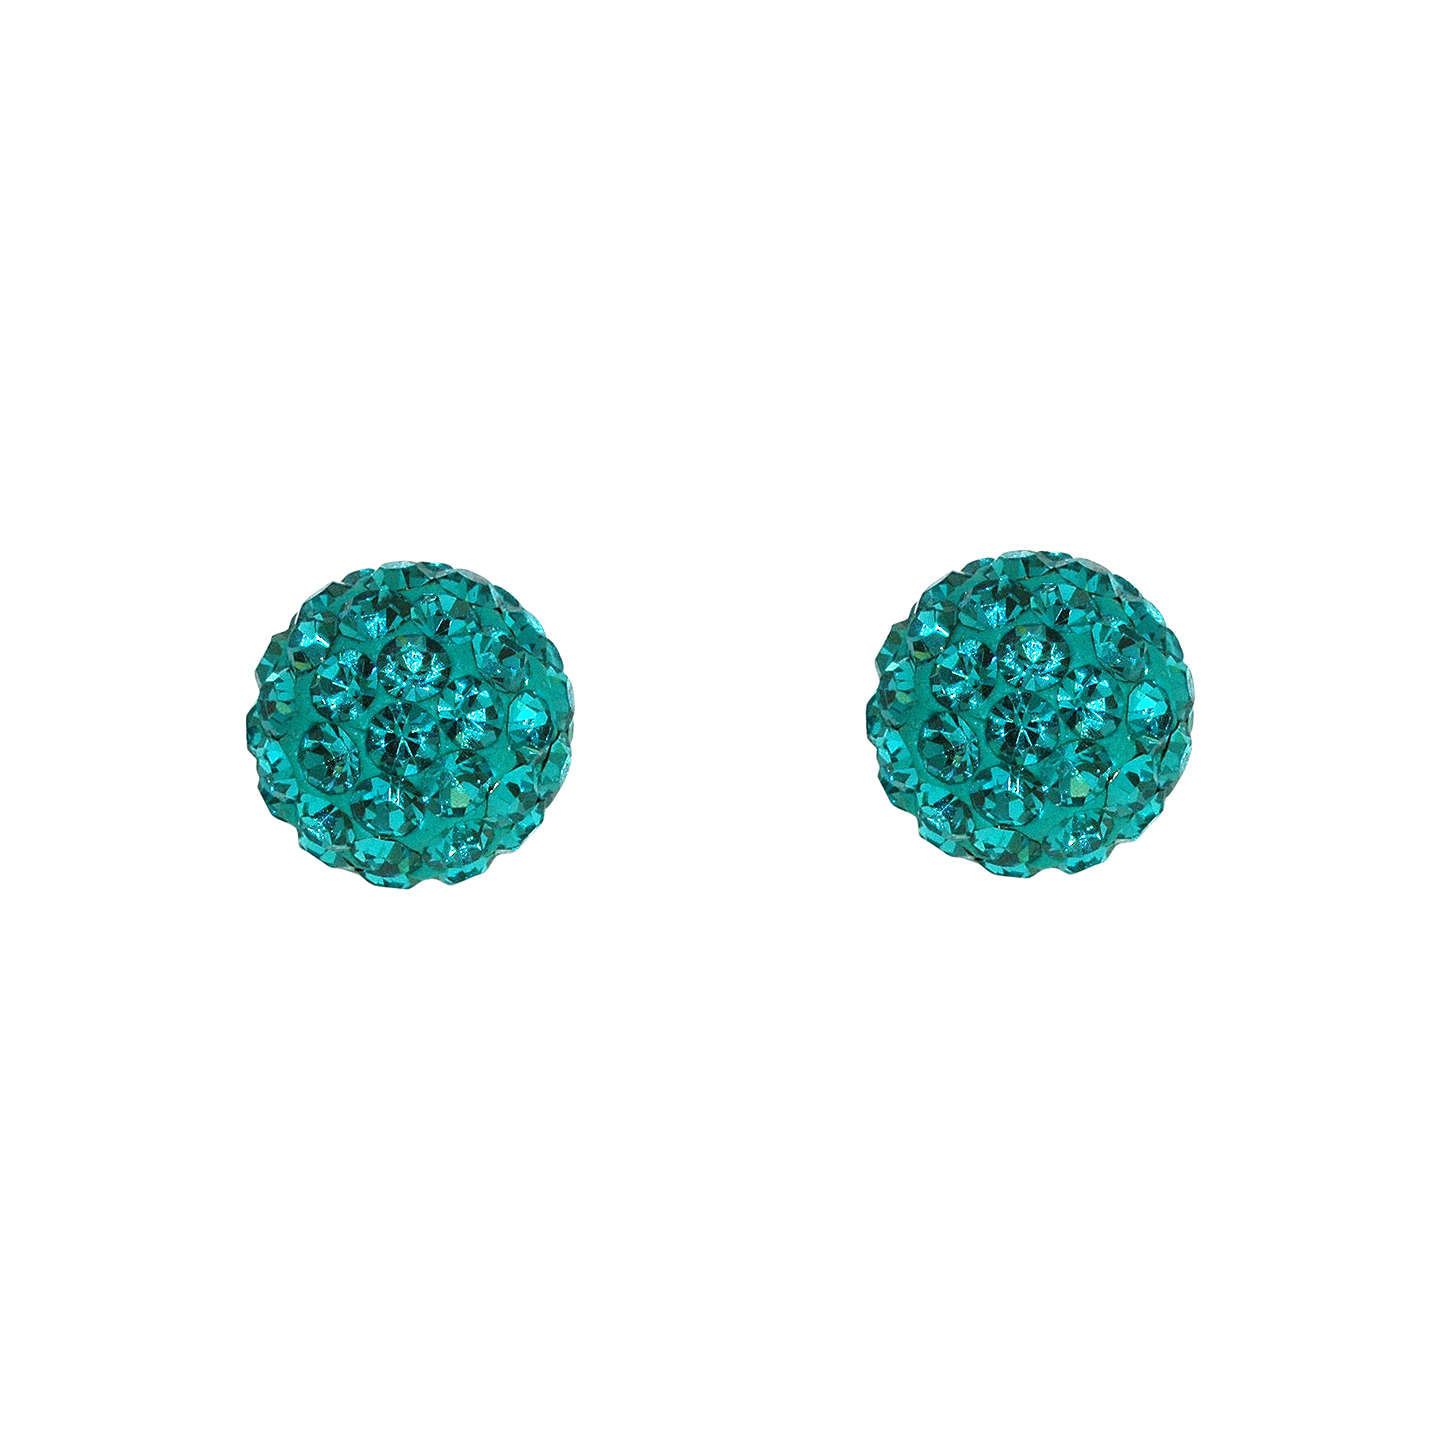 BuyJou Jou Crystal Pavé Round Ball Stud Earrings, Turquoise Online at johnlewis.com